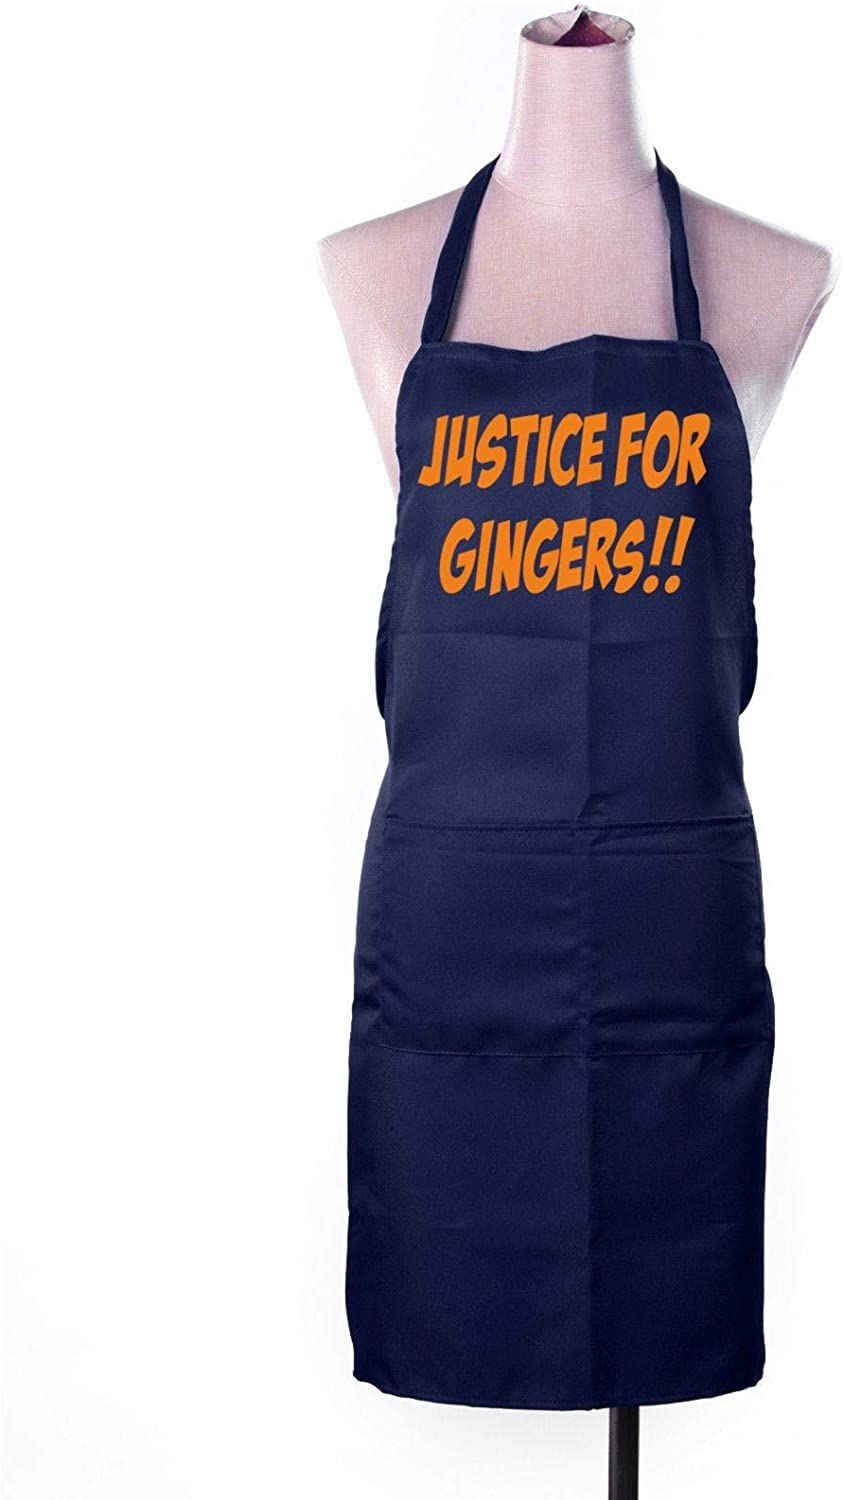 Festival-Fashion Funny Apron Mens Womens Cooking Novelty Rude Chefs Gift Justice for Gingers Navy